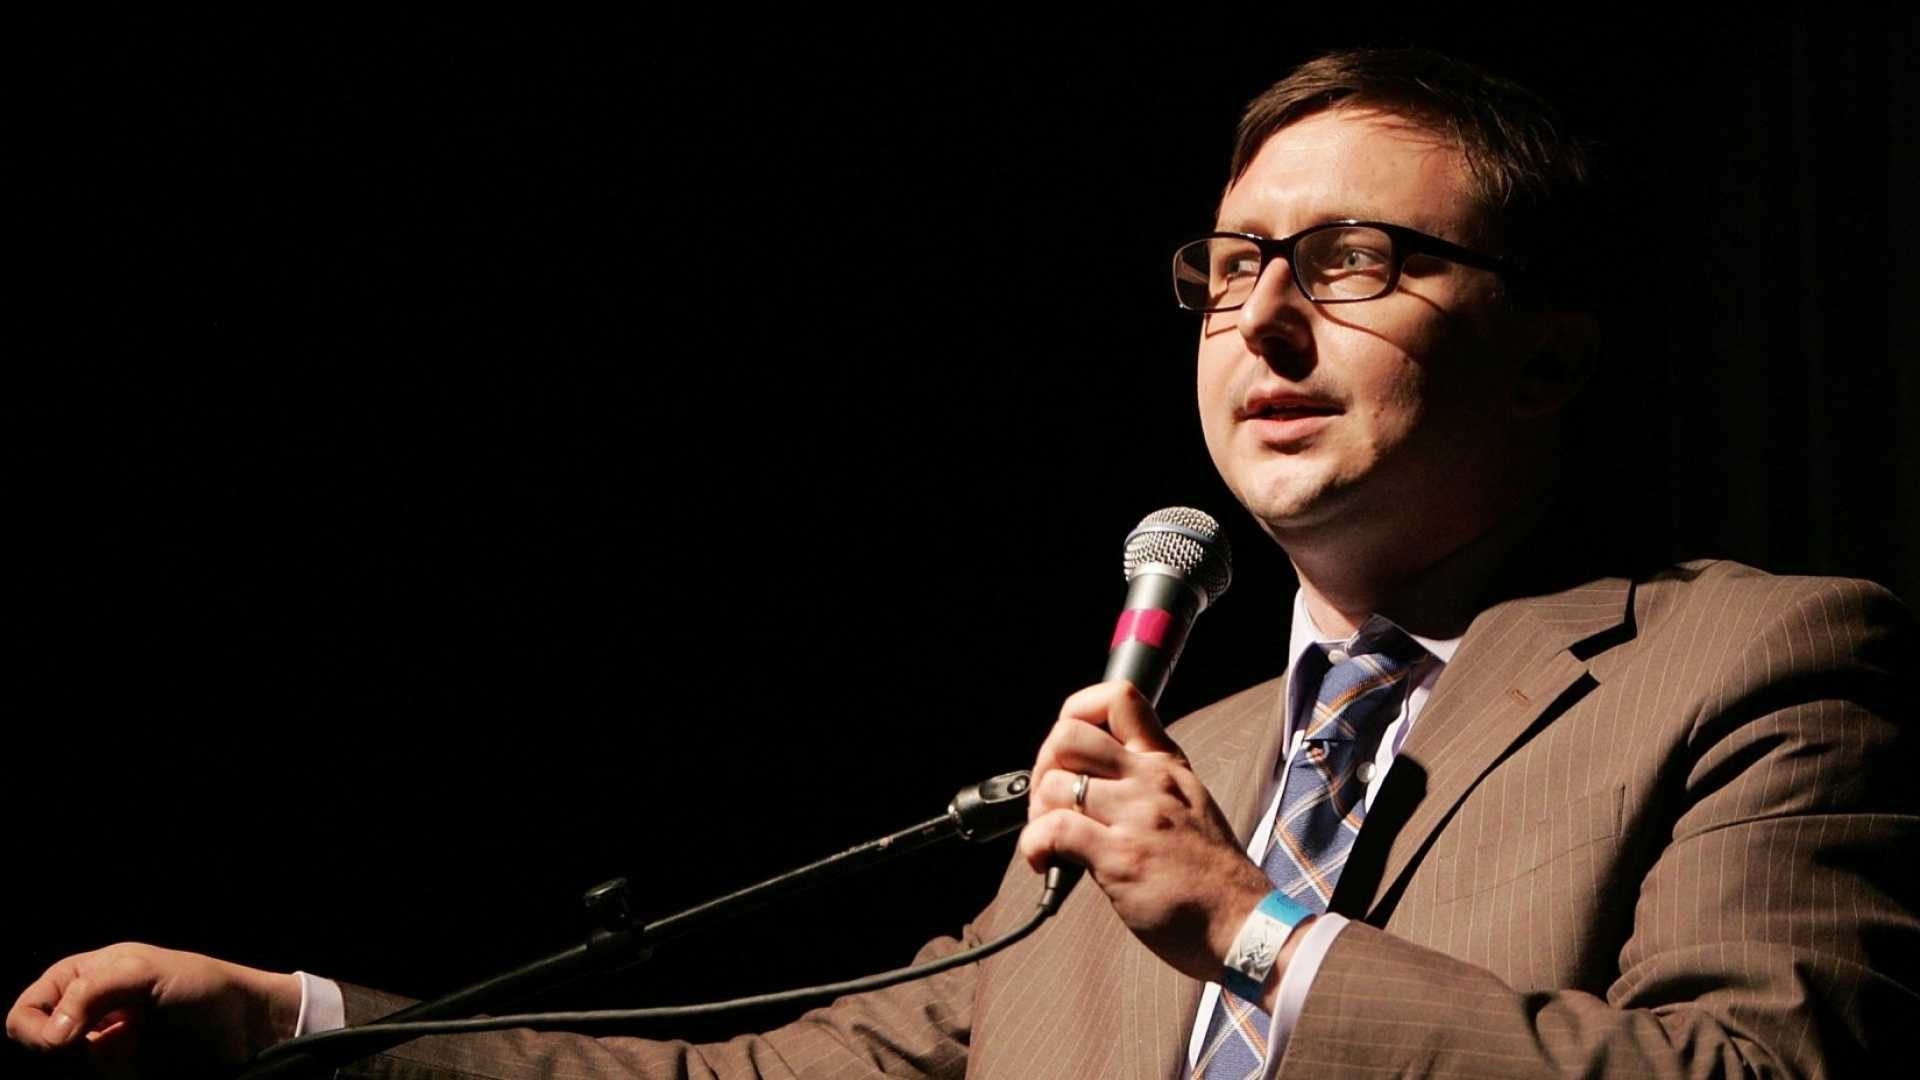 Only comedian John Hodgman could see the connection between searching for extraterrestrials and finding love.